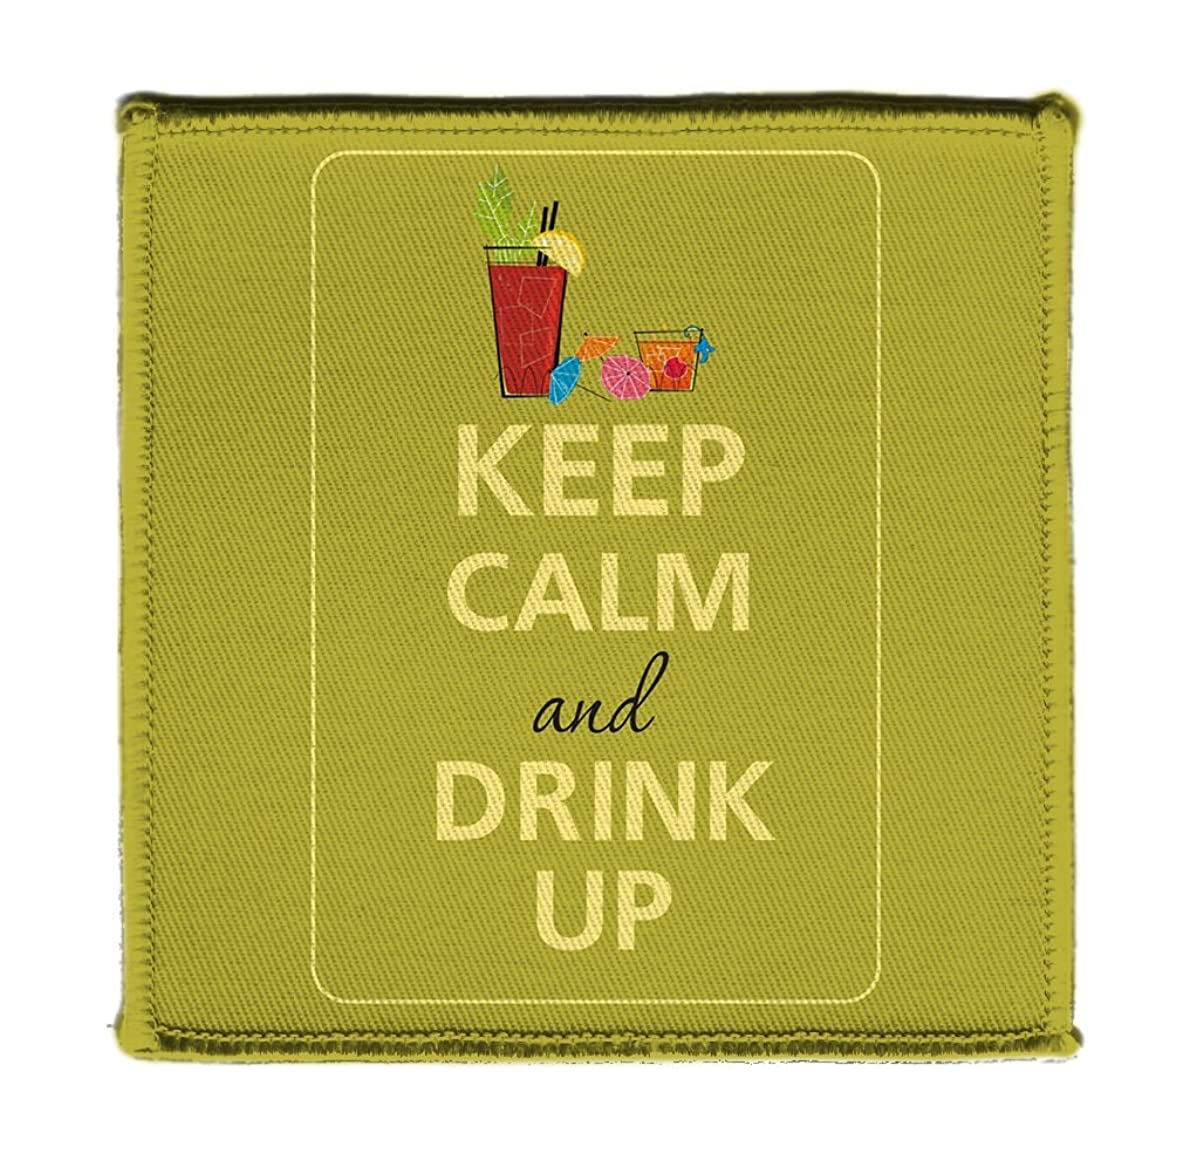 Keep Calm AND DRINK UP ALCOHOL BLOODY MARY - Iron on 4x4 inch Embroidered Edge Patch Applique